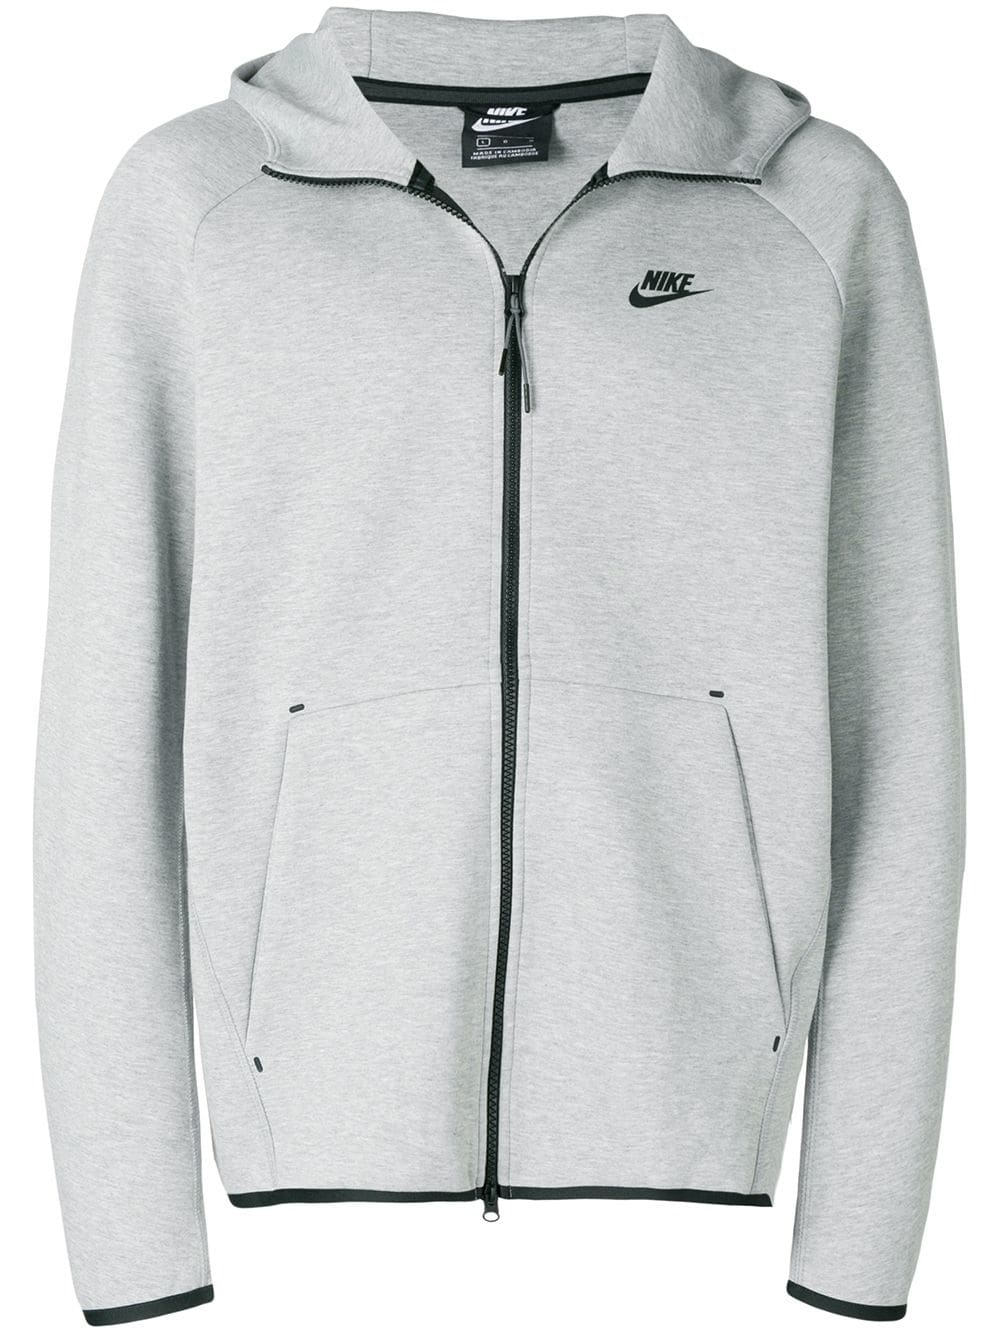 Tech Fleece hoodie Tech fleece hoodie, Nike tech fleece